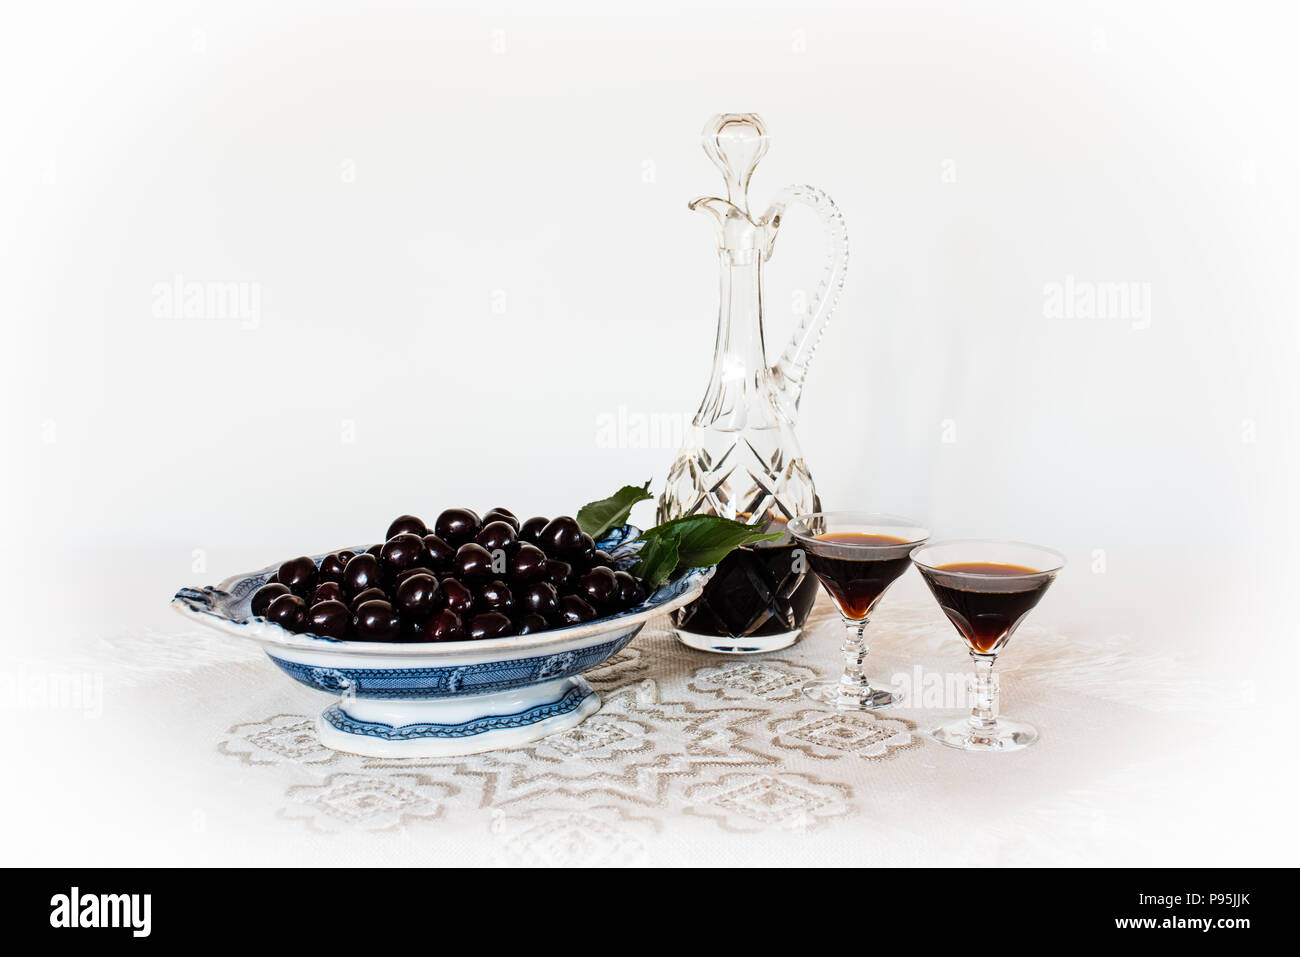 Cherries on an old china dish and a crystal carafe and glasses with cherry brandy on a table cloth with a white background, a still life. - Stock Image